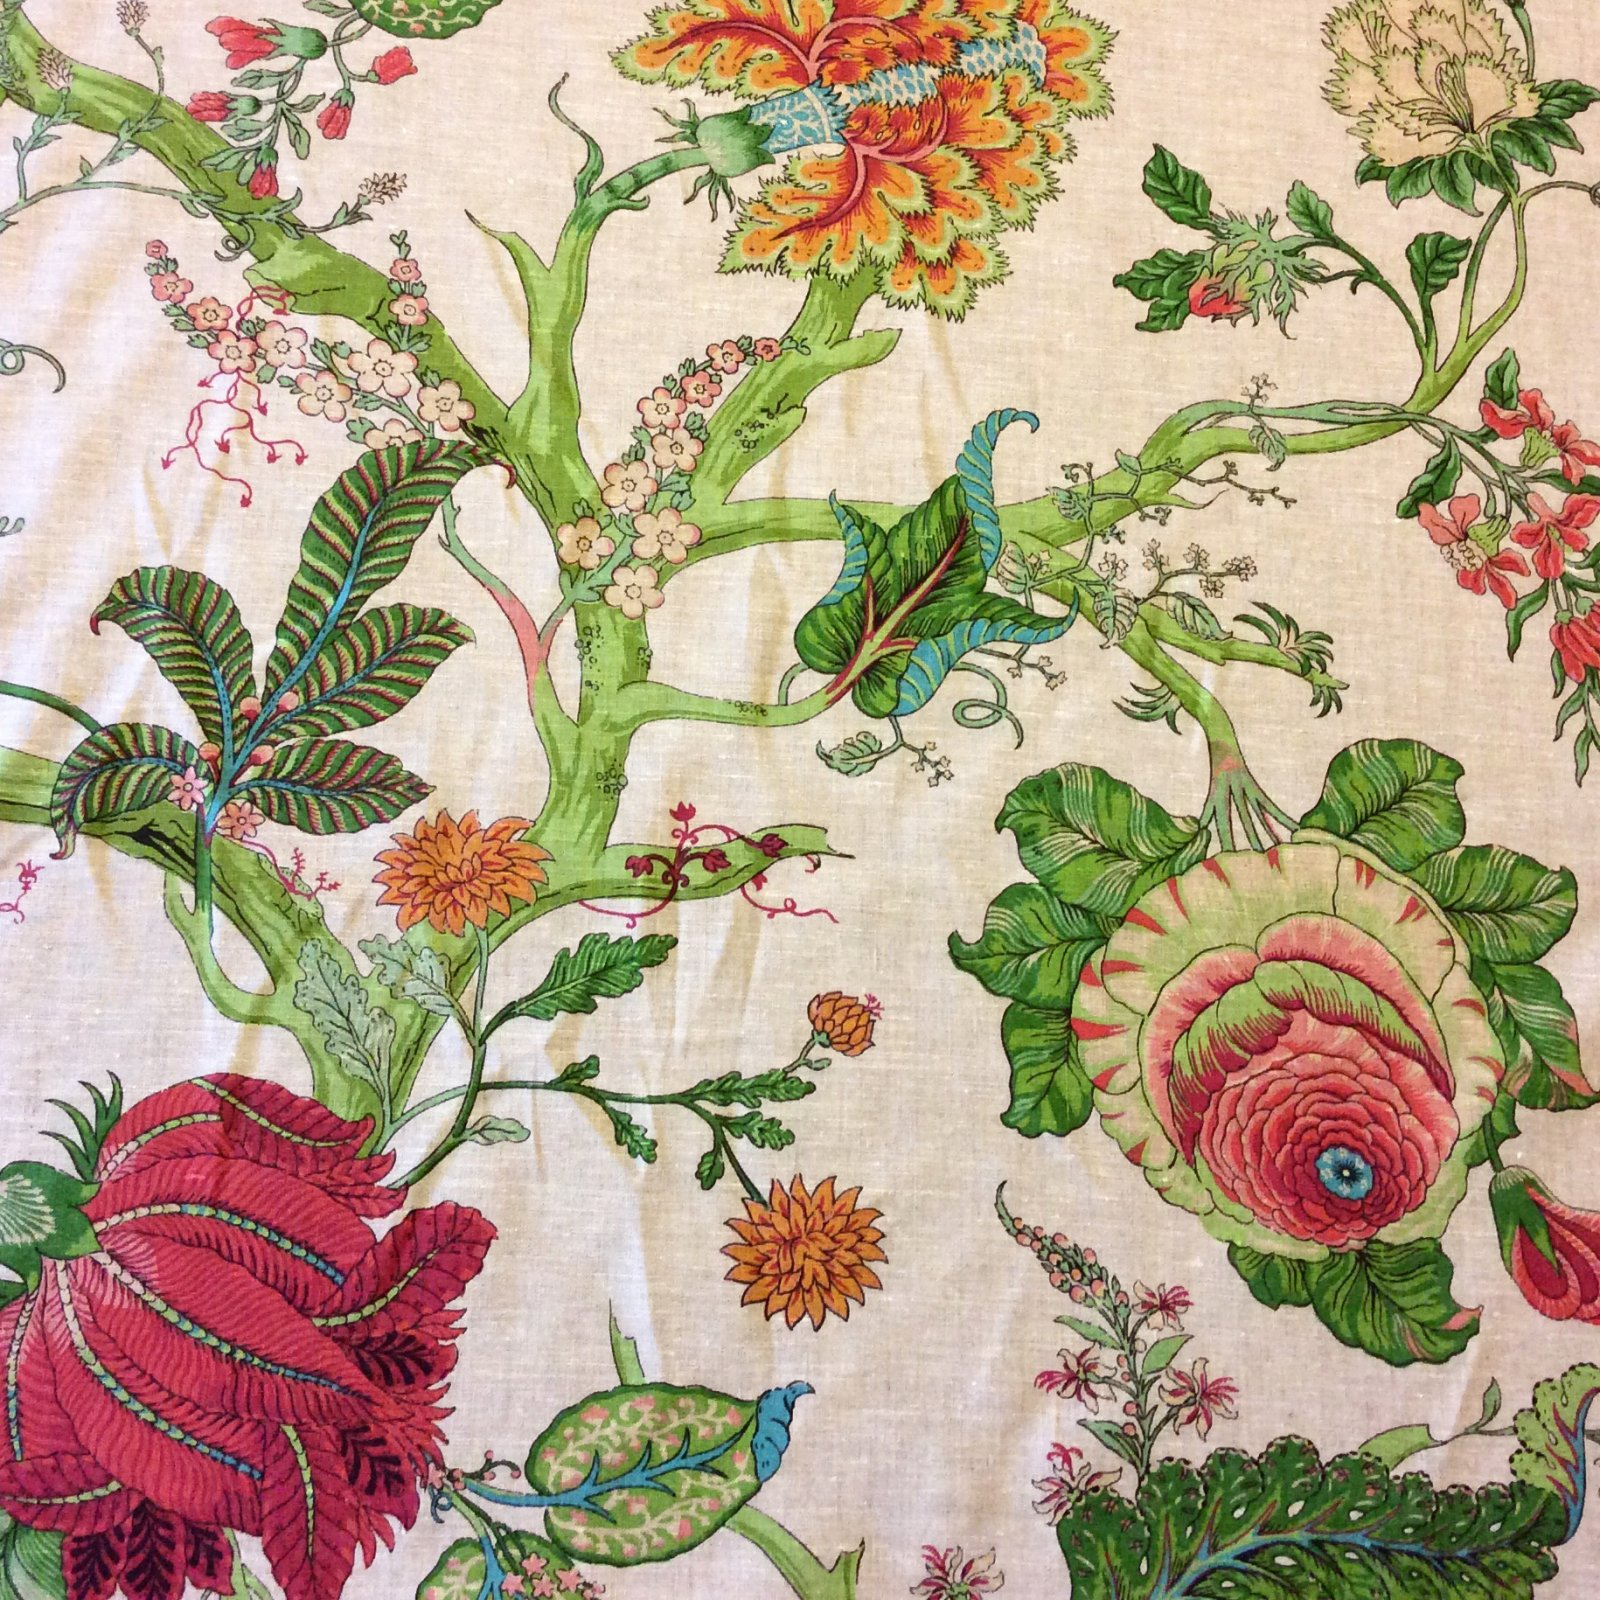 CV104 Retro Linen Floral Tropical Garden Upholstery Drapery Home Decor  Fabric